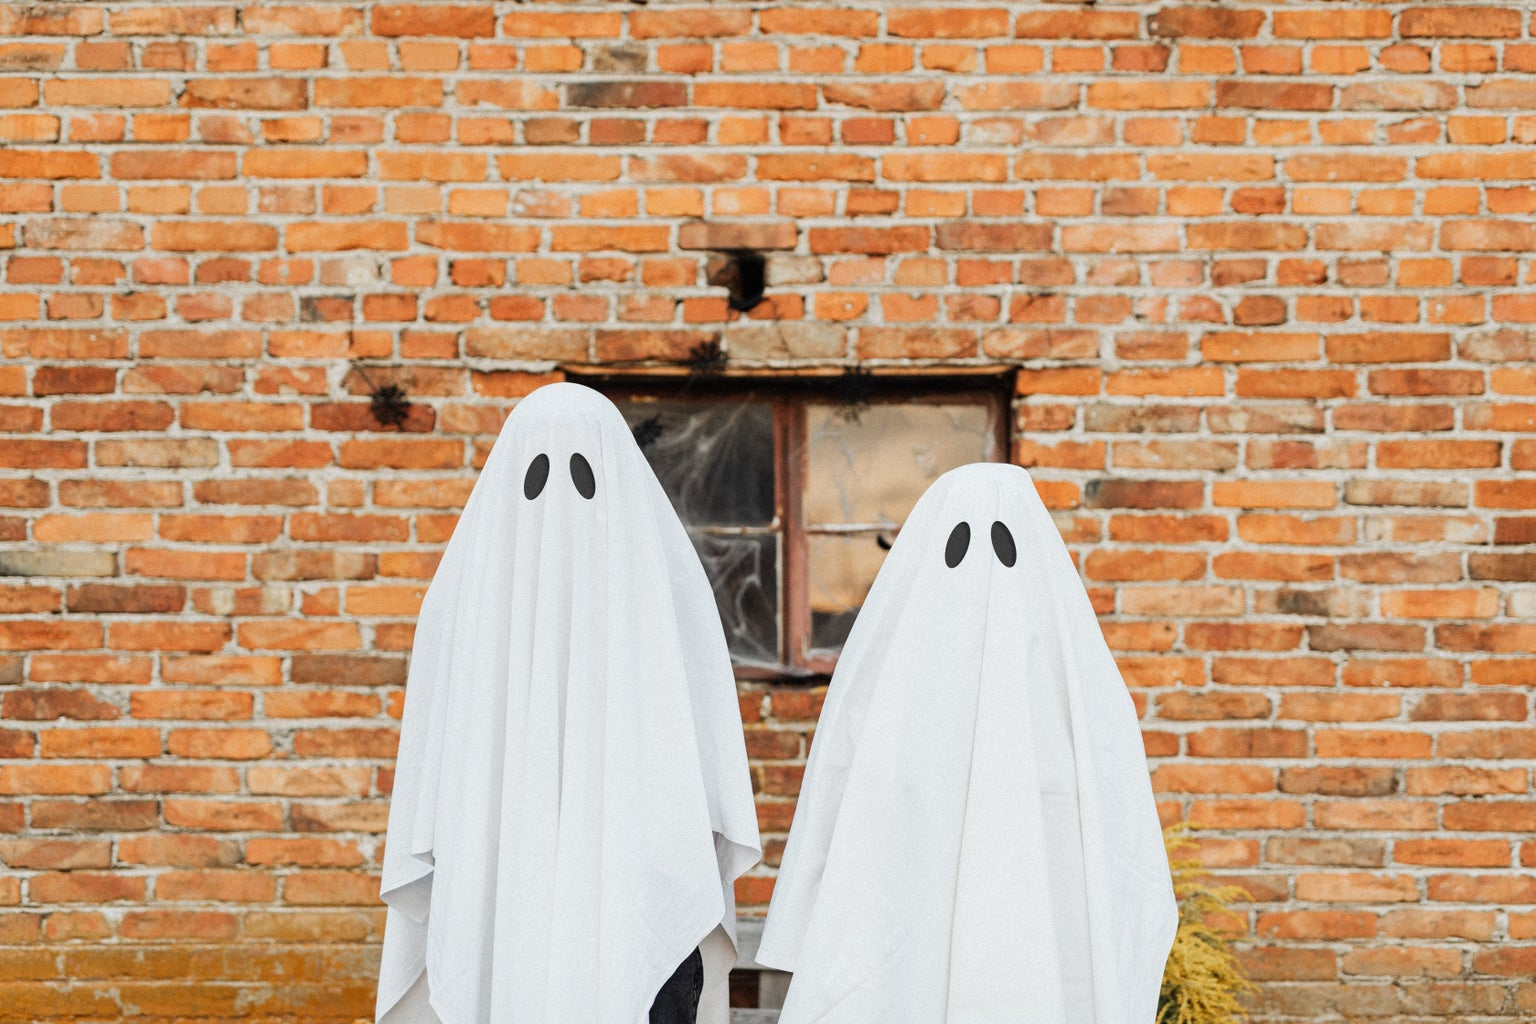 Two Ghosts Standing in Front of a Brick Wall